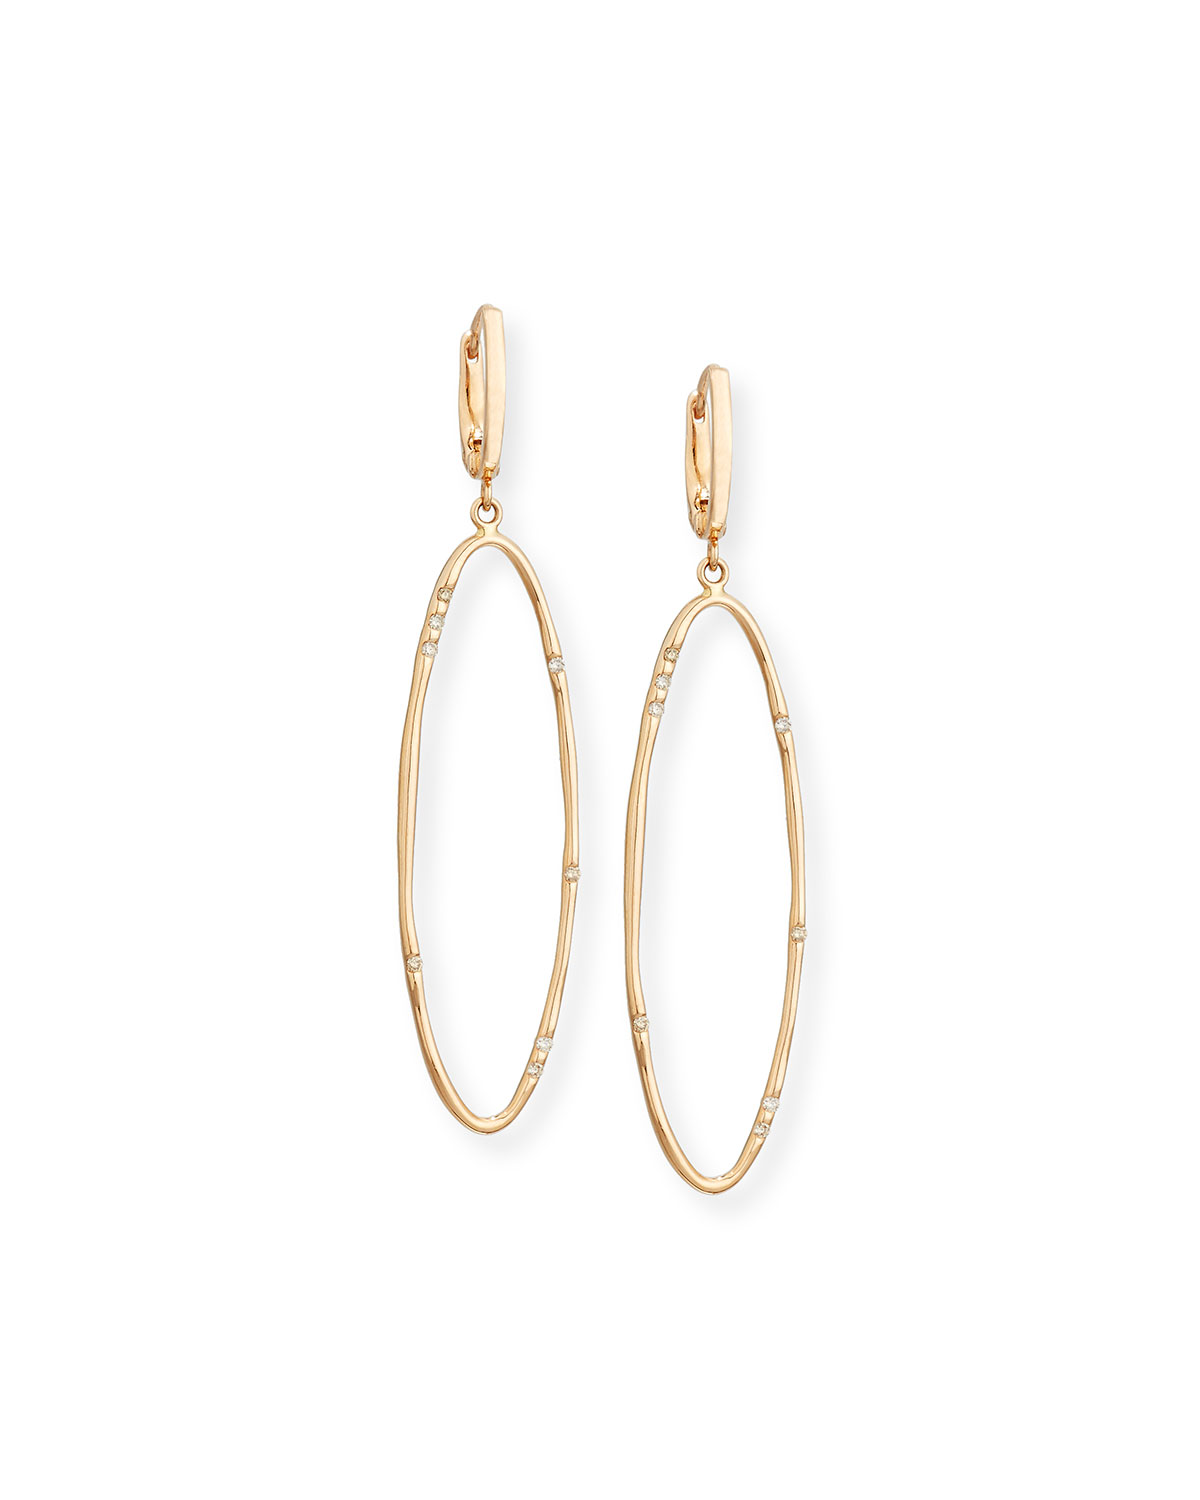 VENDORAFA ELONGATED OVAL DROP EARRINGS WITH DIAMONDS